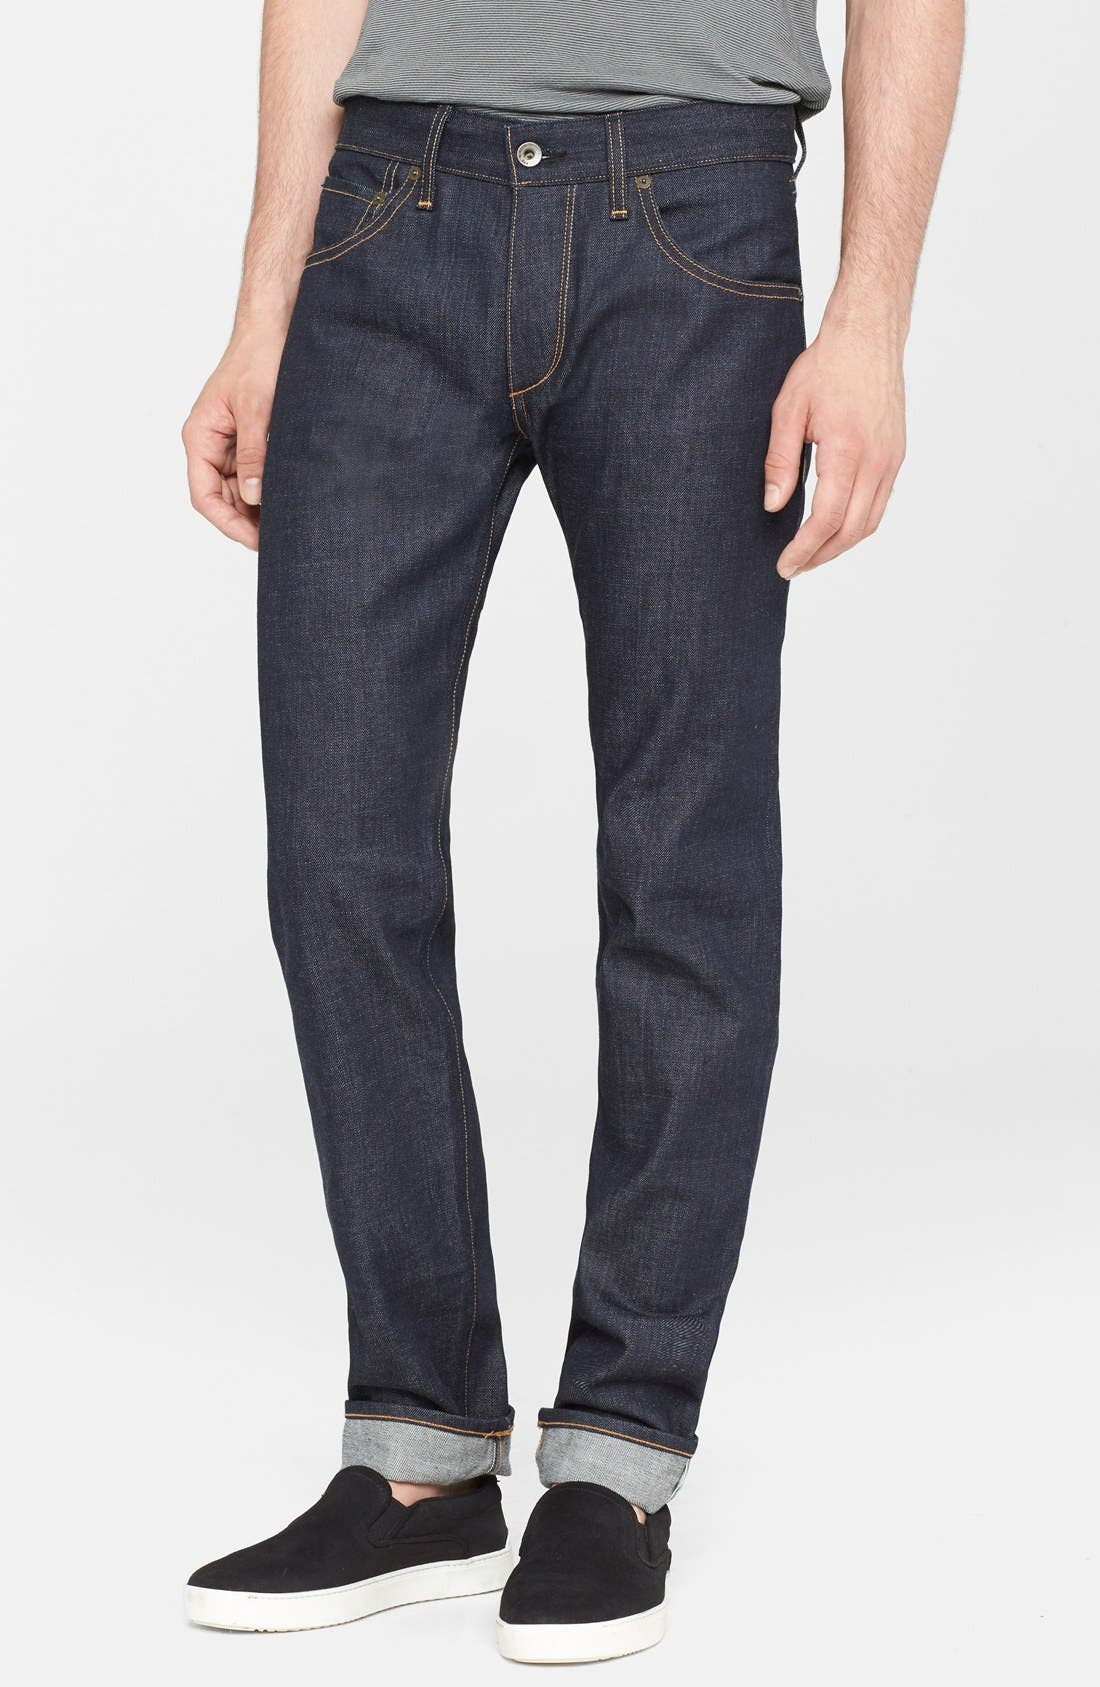 Alternate Image 1 Selected - rag & bone Standard Issue Fit 2 Slim Fit Raw Selvedge Jeans (Indigo)